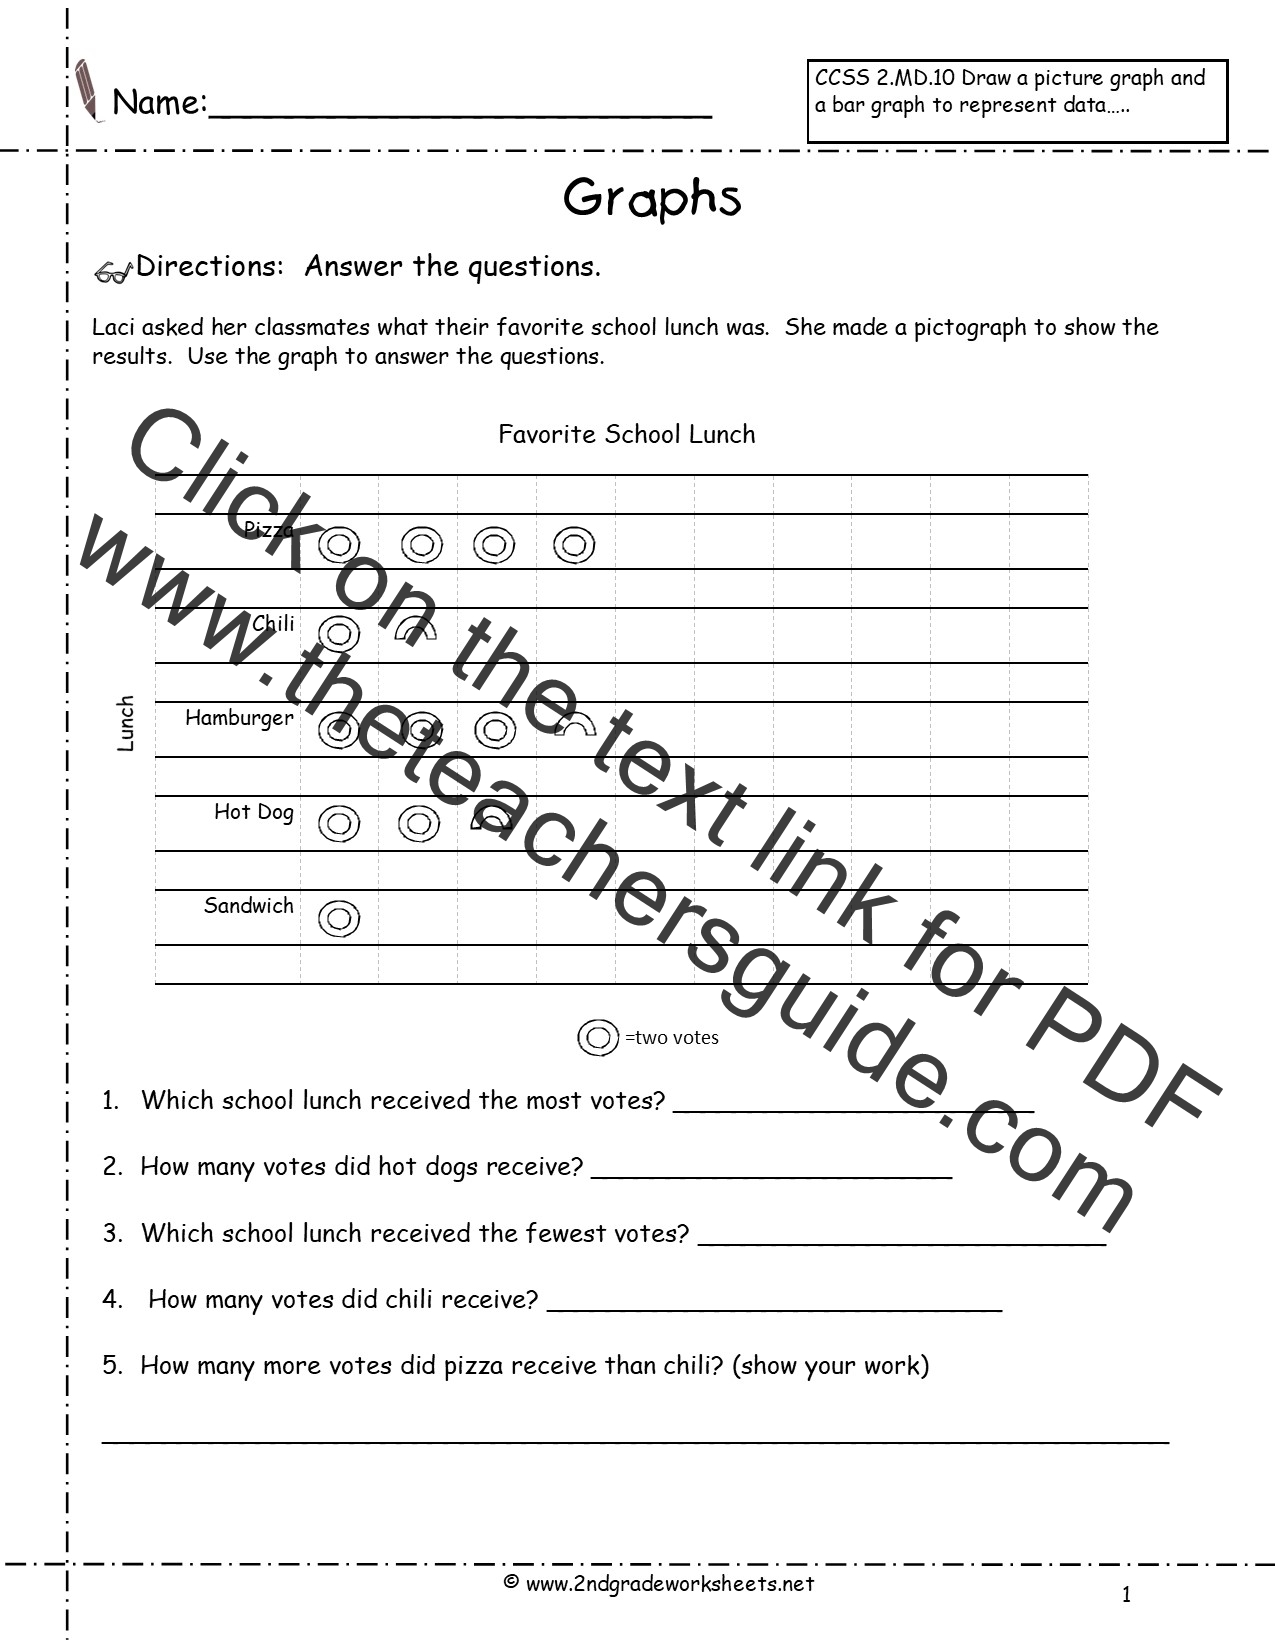 Reading And Creating Pictographs Worksheets From The